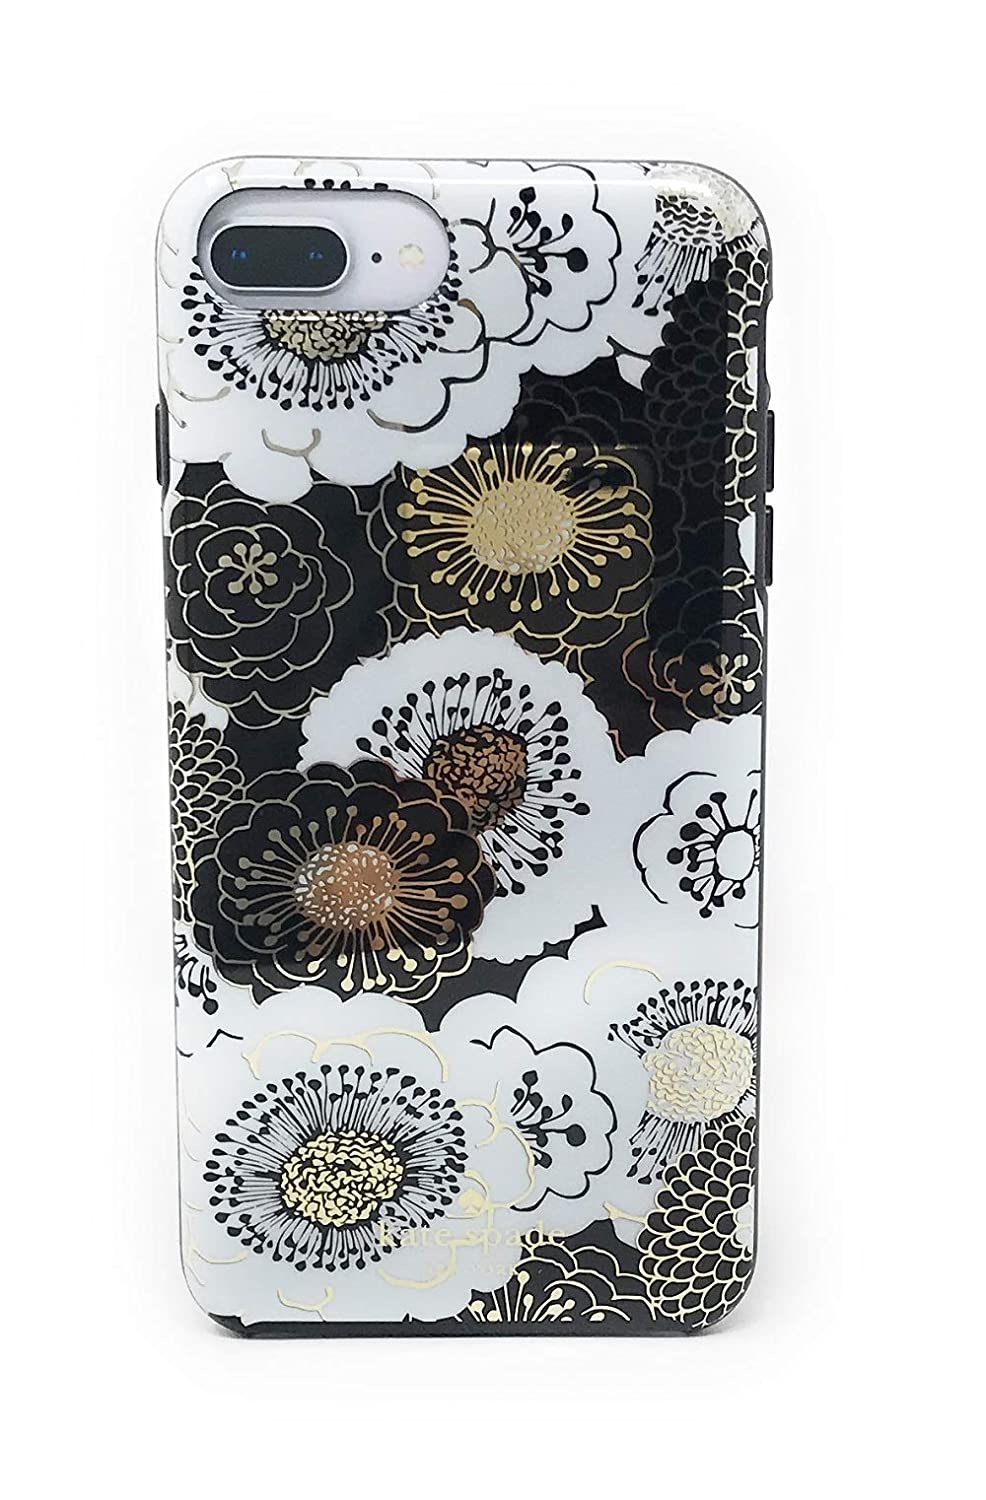 Kate Spade New York Floral Case for iPhone 8 Plus / iPhone 7 Plus / iPhone 6 Plus - Black/Gold/White